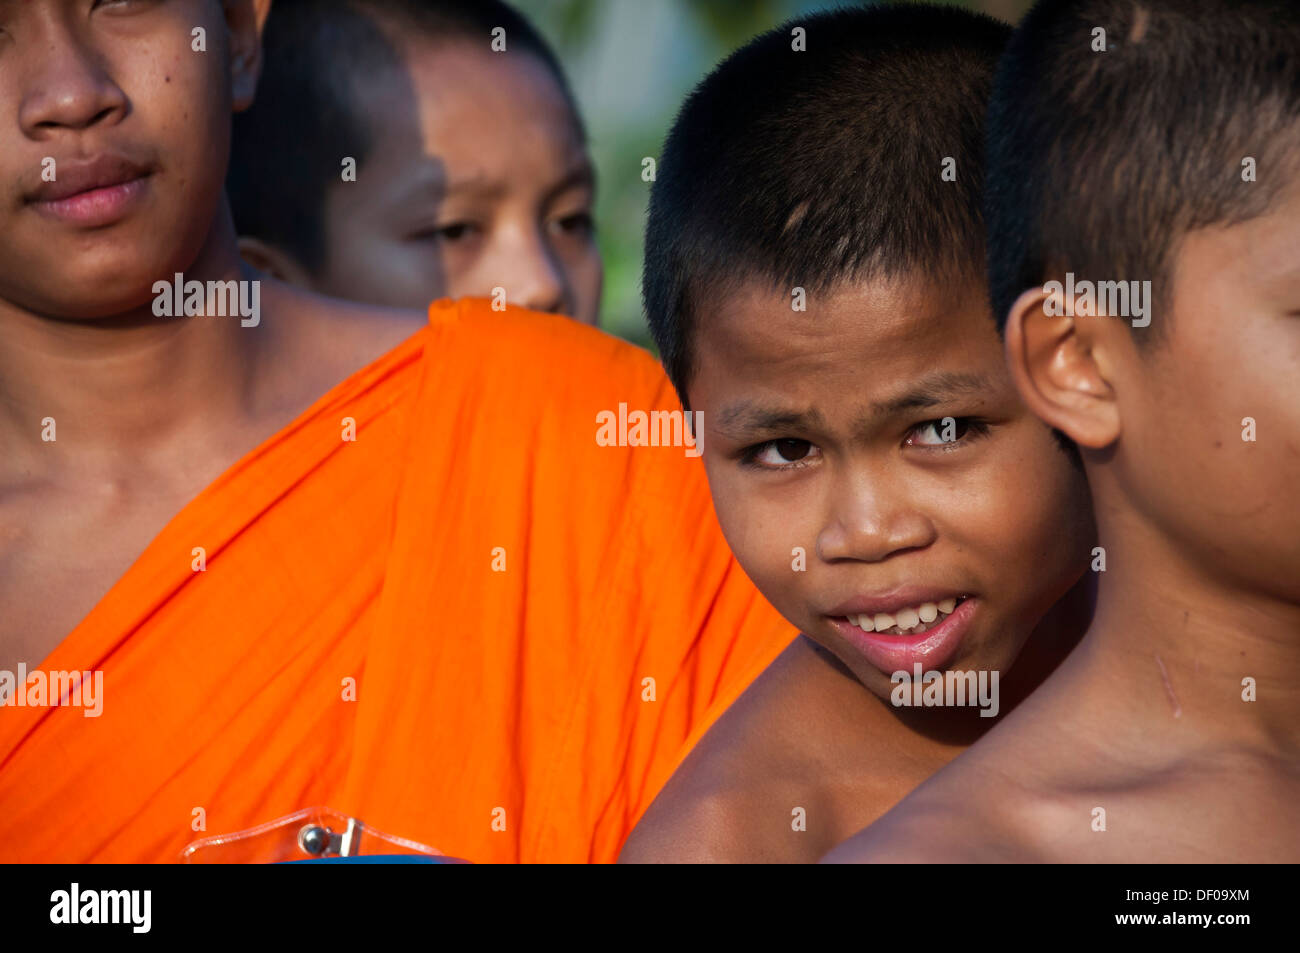 Morning alms round, smiling young Buddhist monk from the monastery school, portrait, Sukhothai Province, Northern Thailand - Stock Image